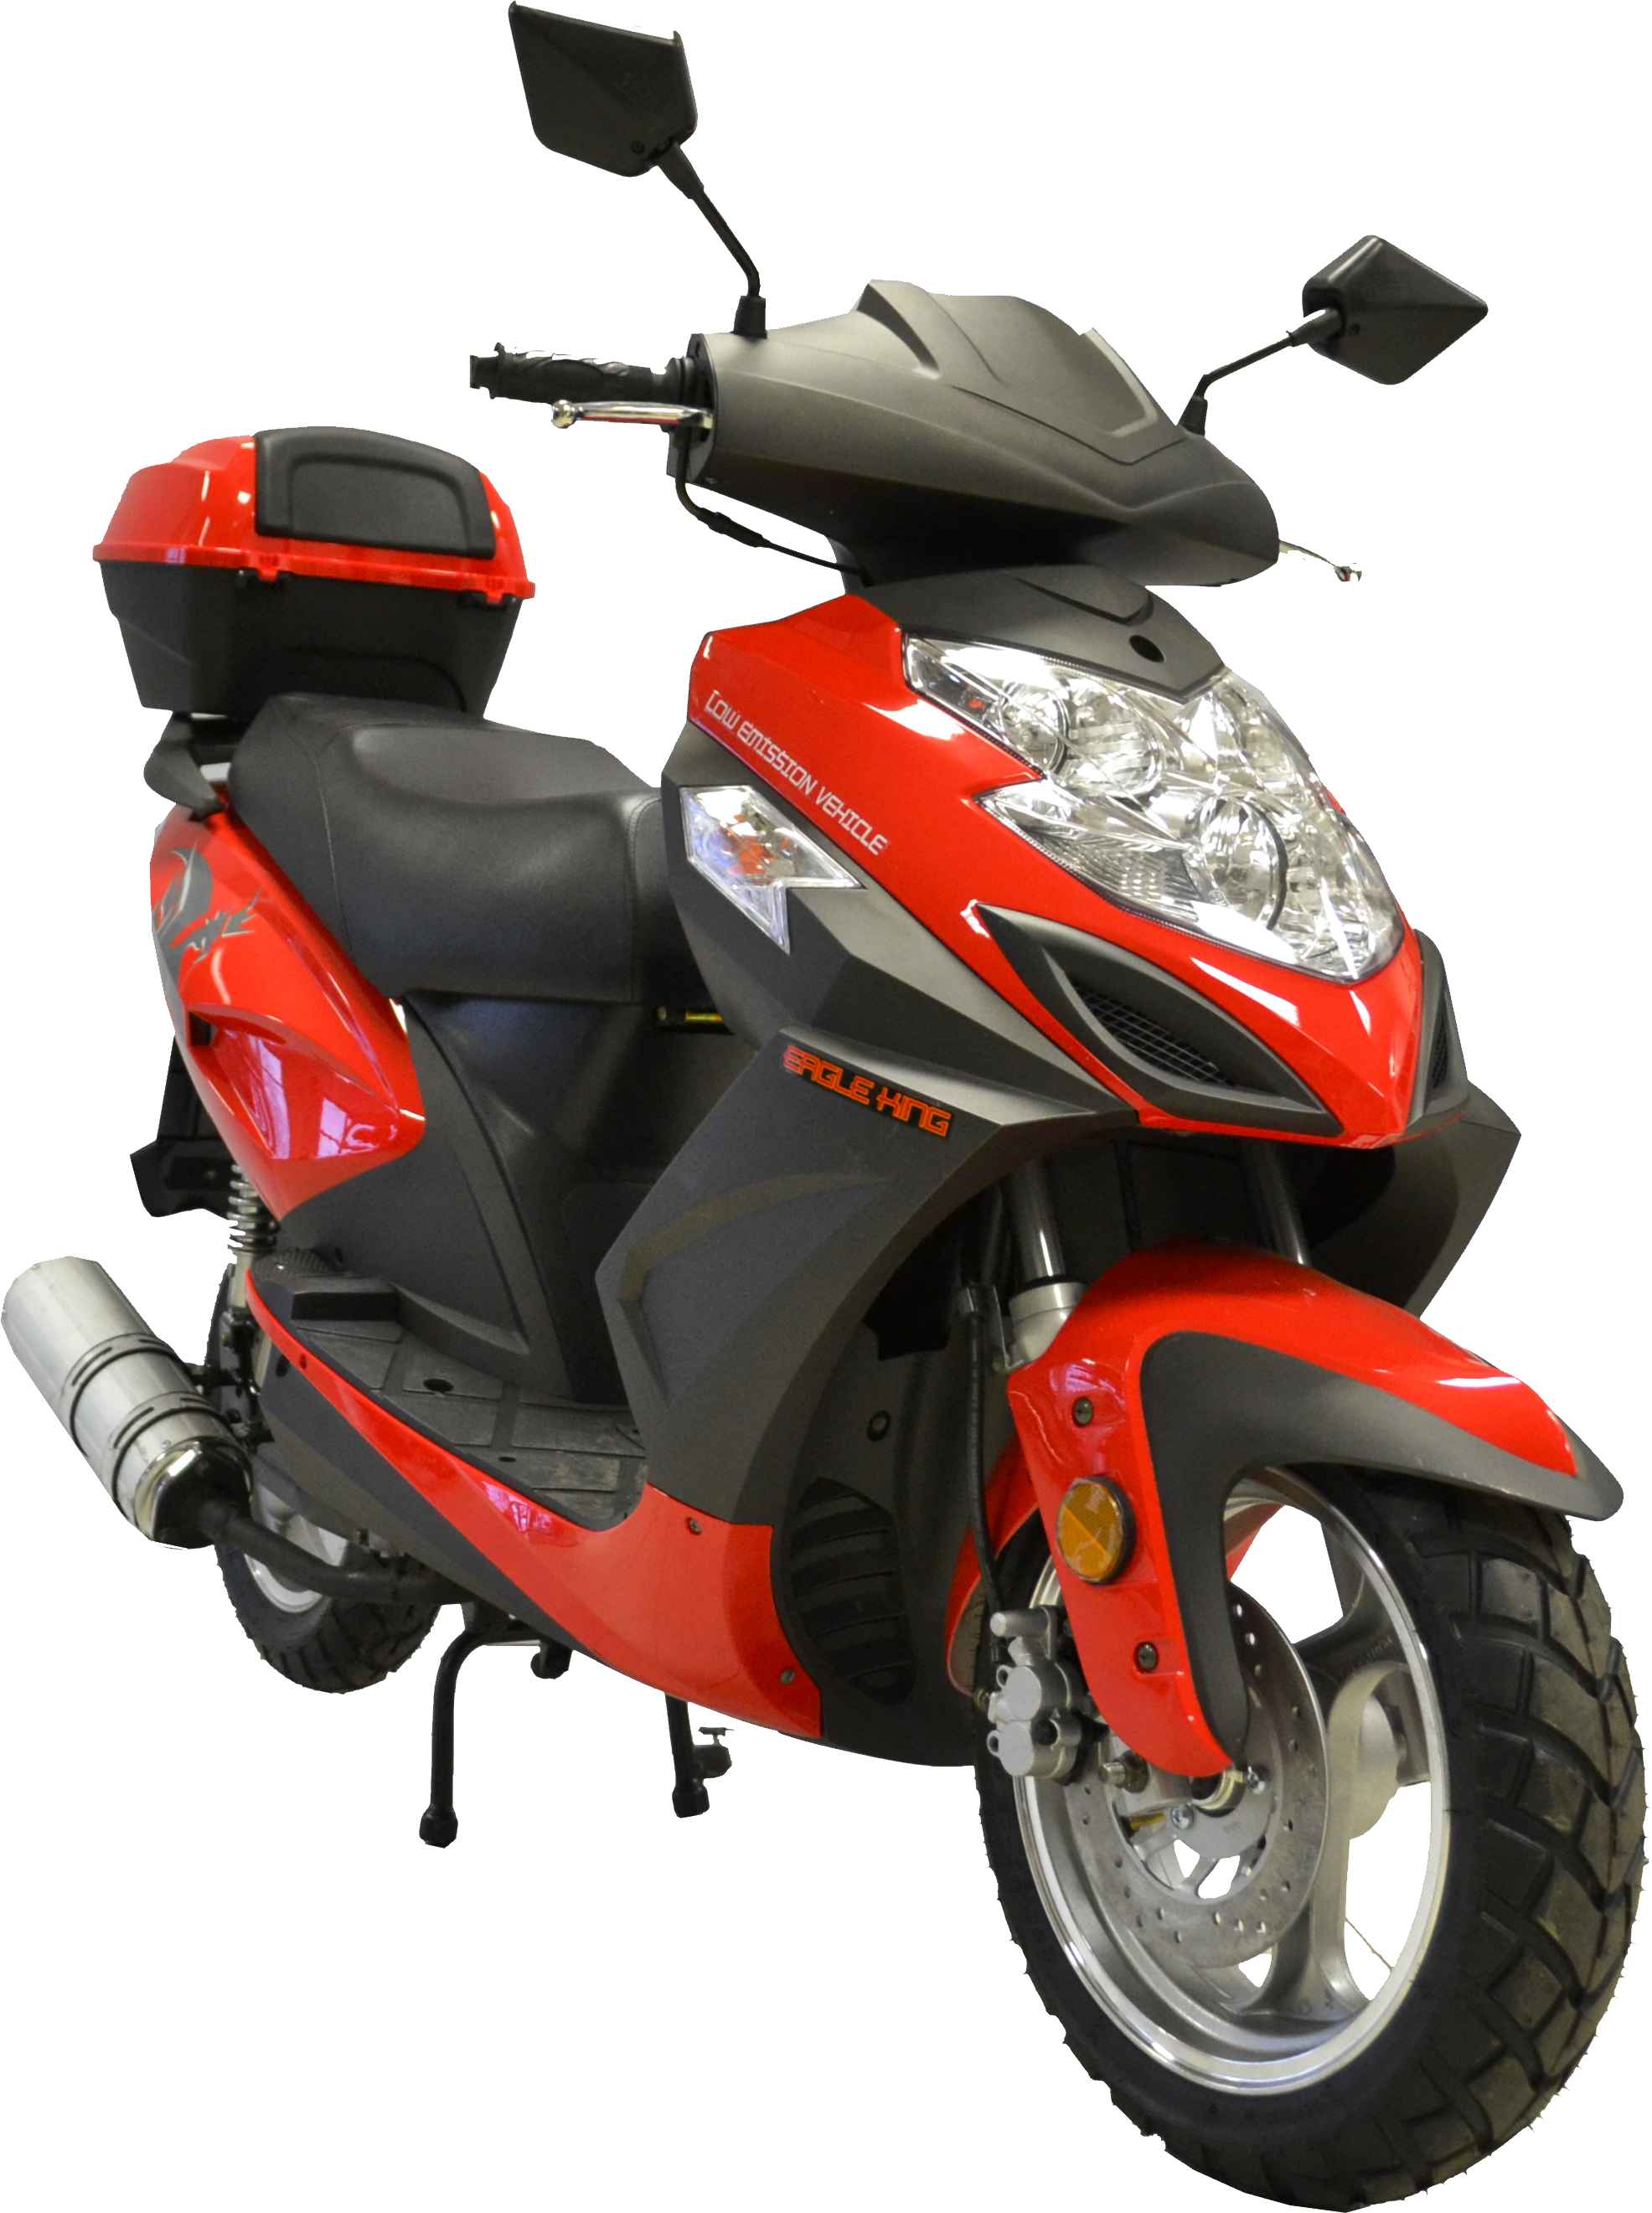 Scooter HD PNG - 120104